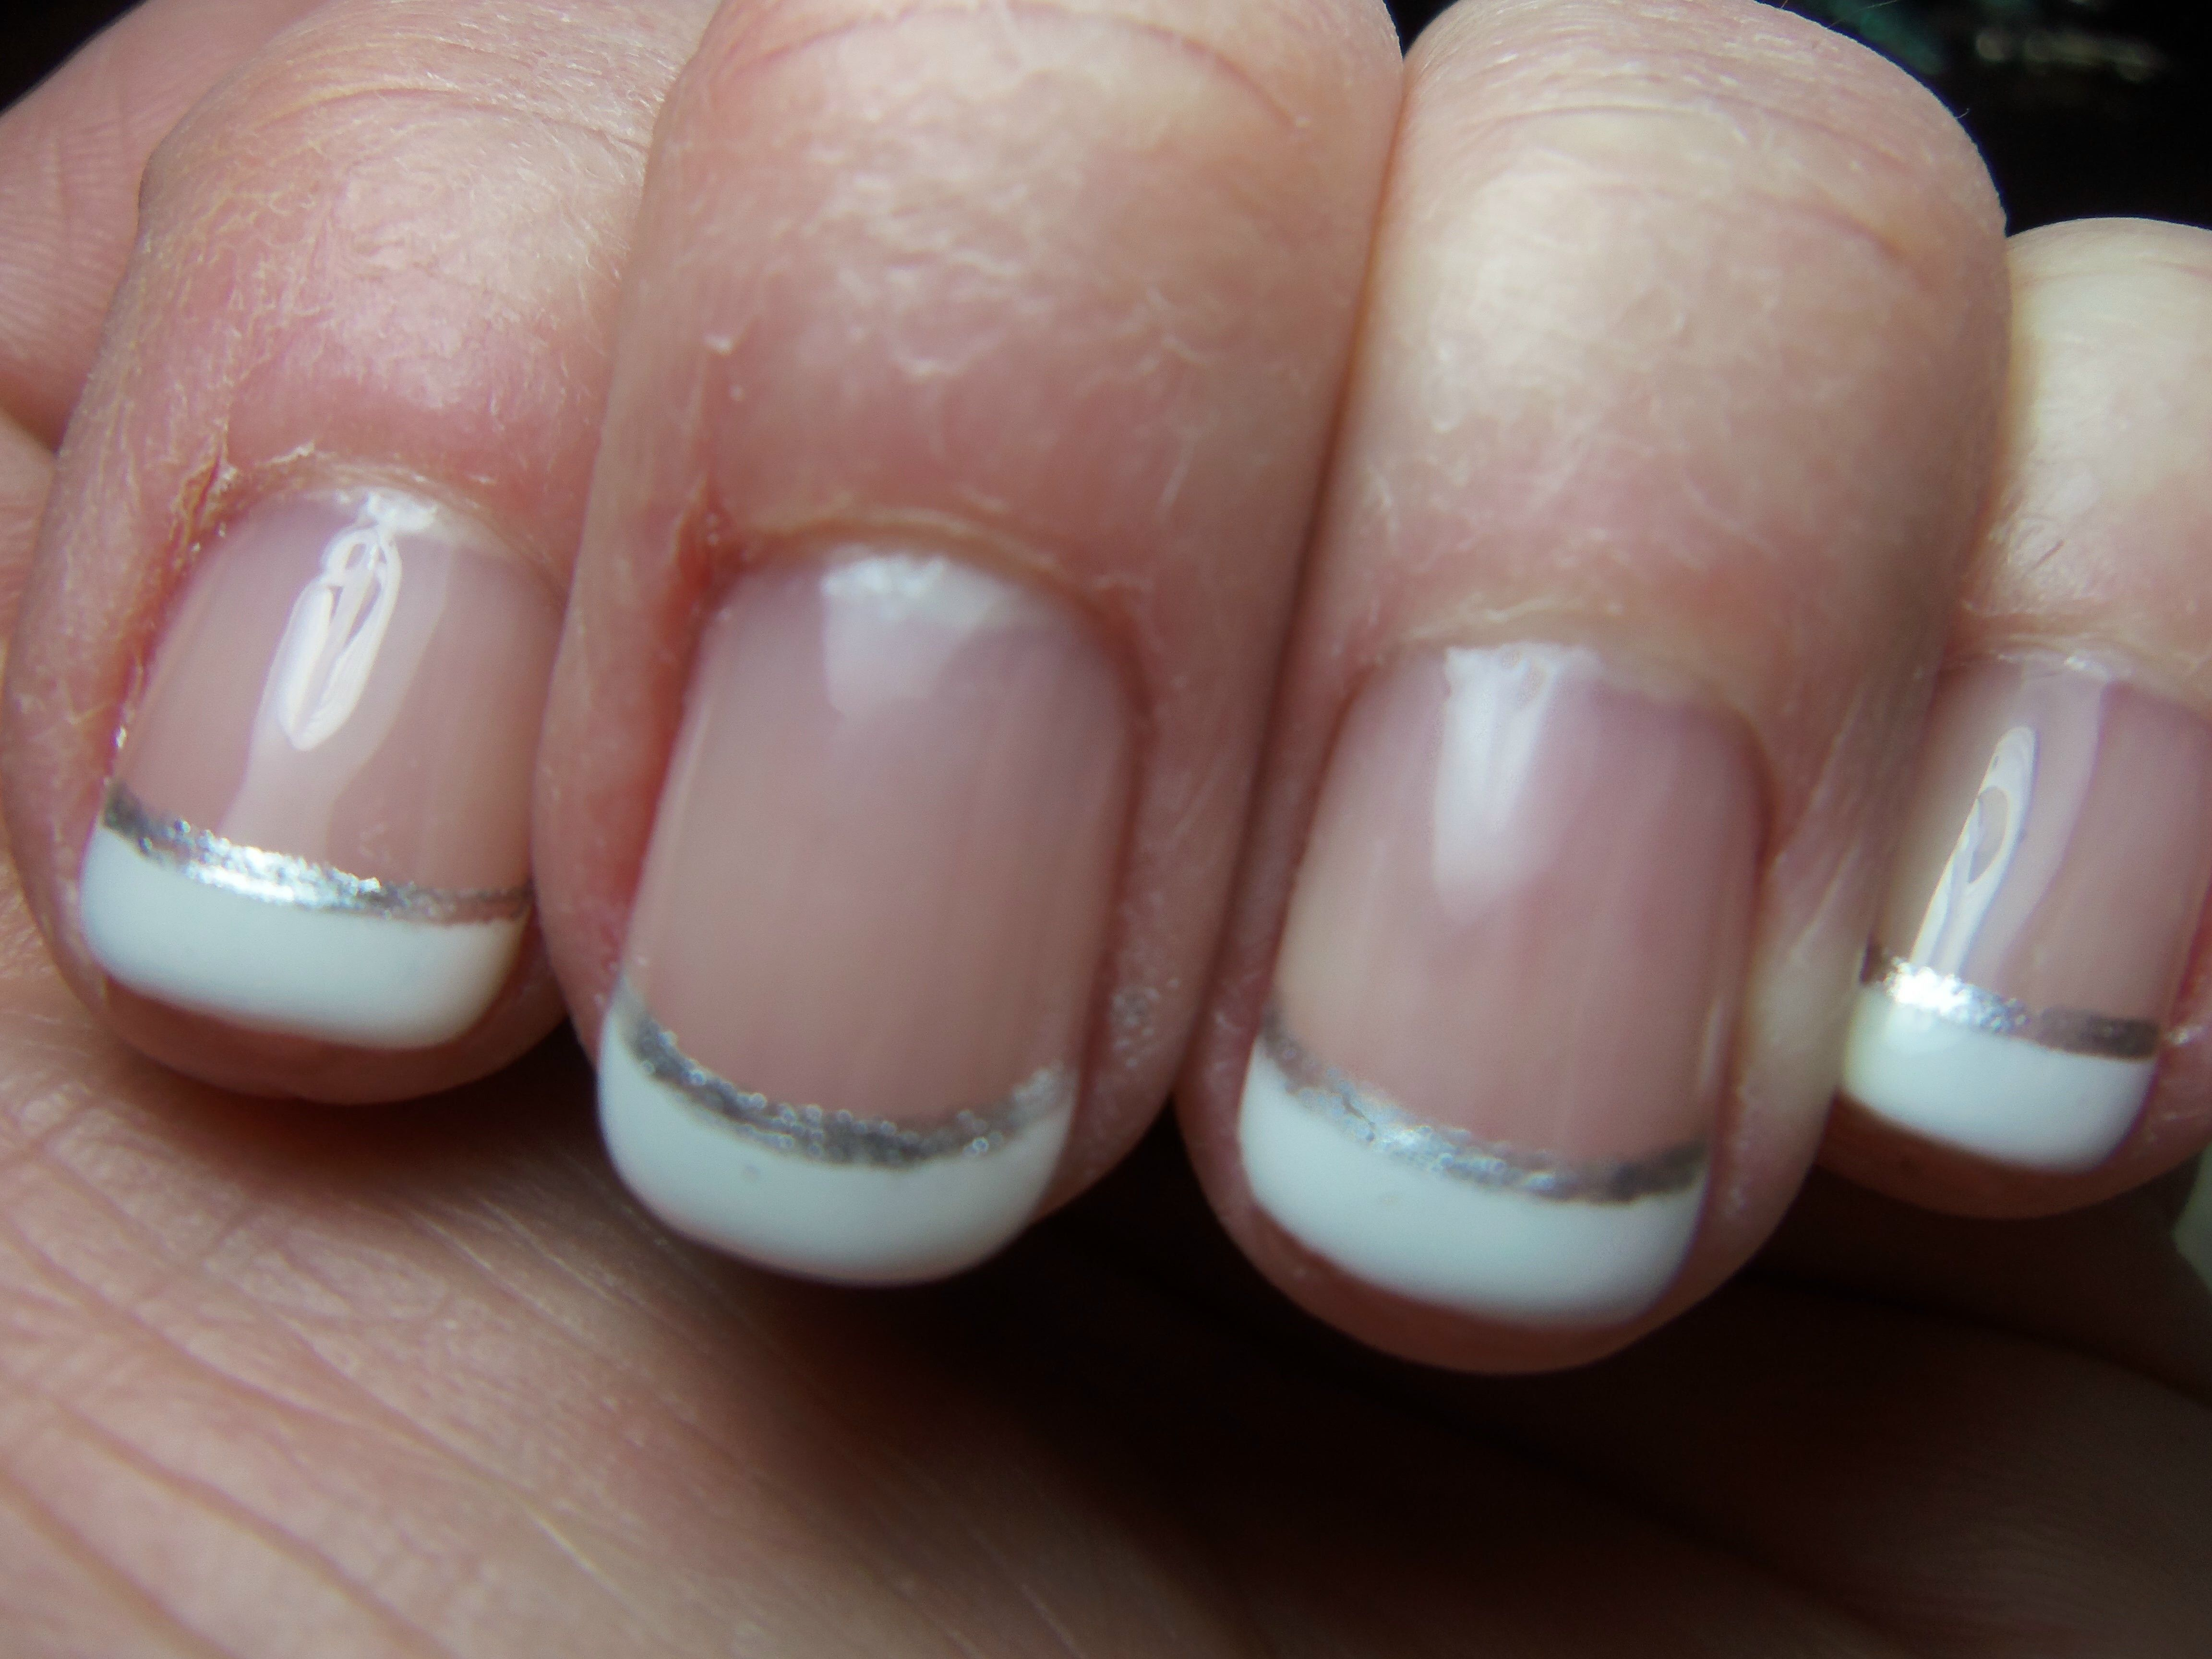 I keep my nails very short. French gel manicure, clear polish with ...